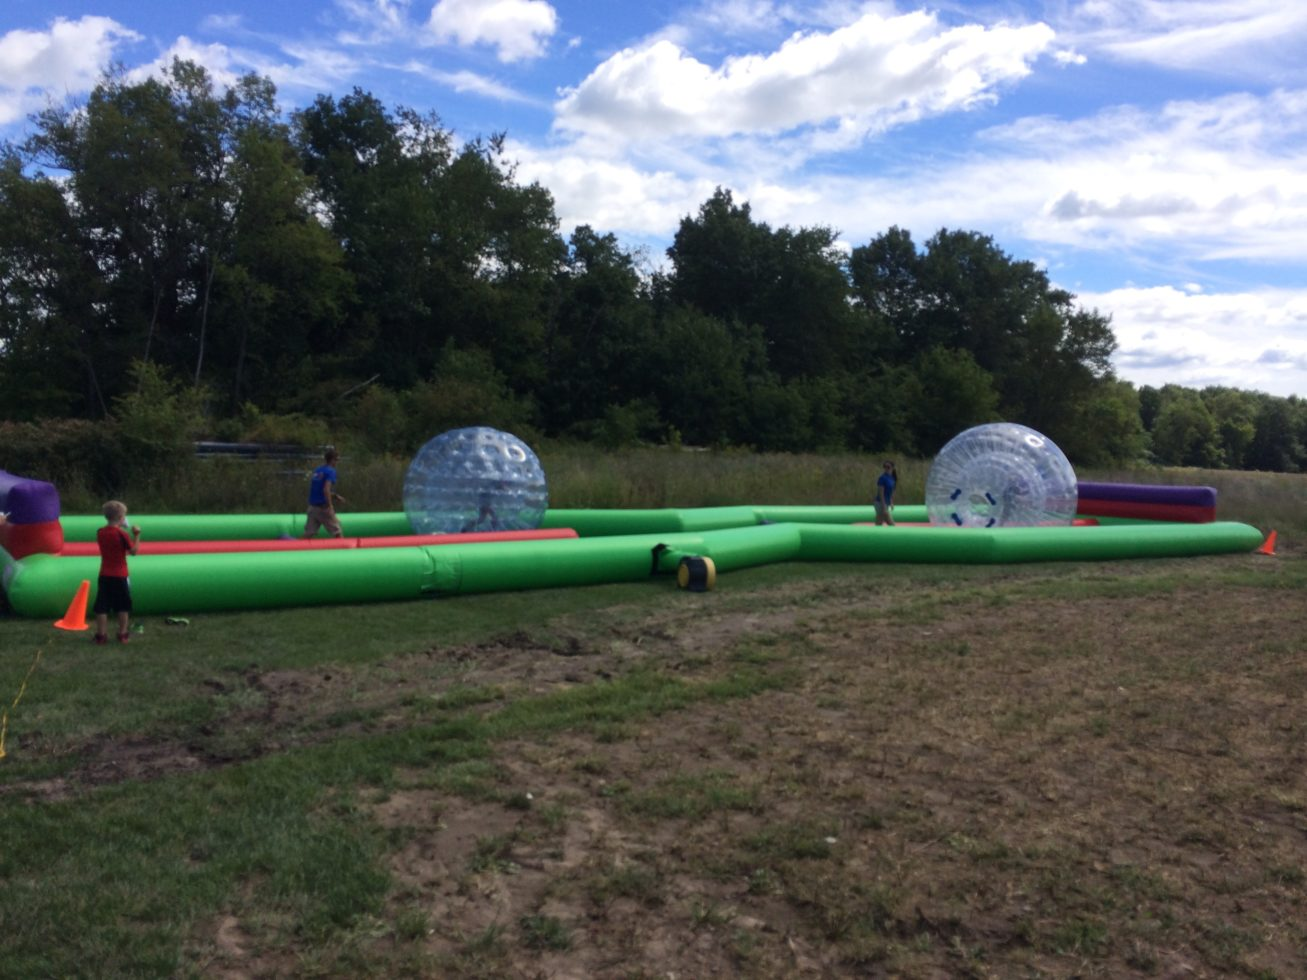 Human hamster balls at event